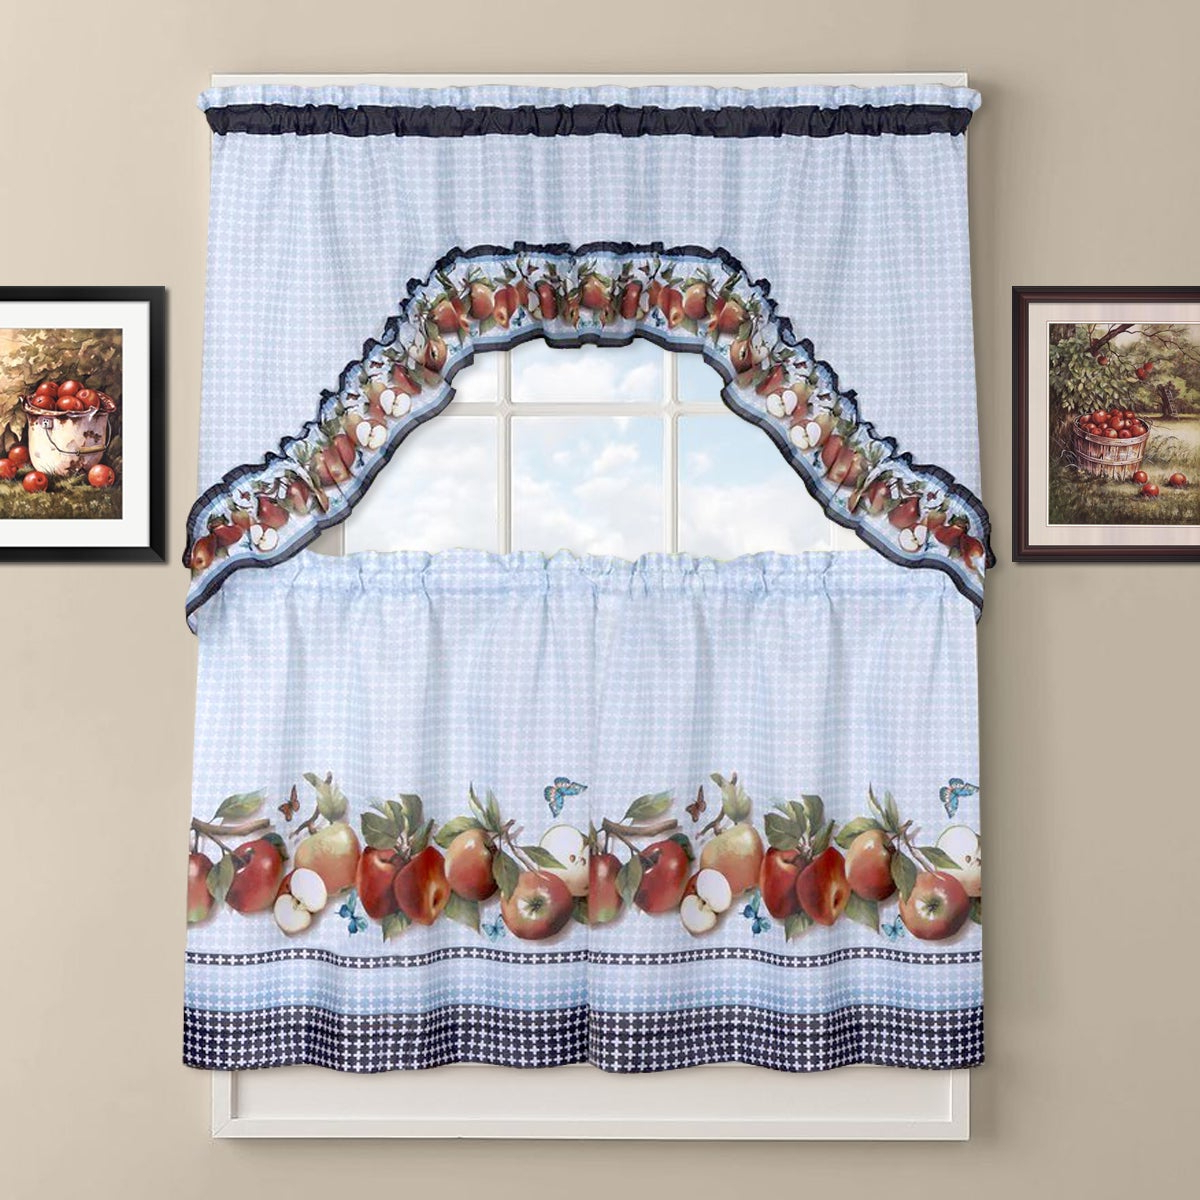 Most Popular Delicious Apples Kitchen Curtain Tier And Valance Set Pertaining To Red Delicious Apple 3 Piece Curtain Tiers (Gallery 7 of 20)